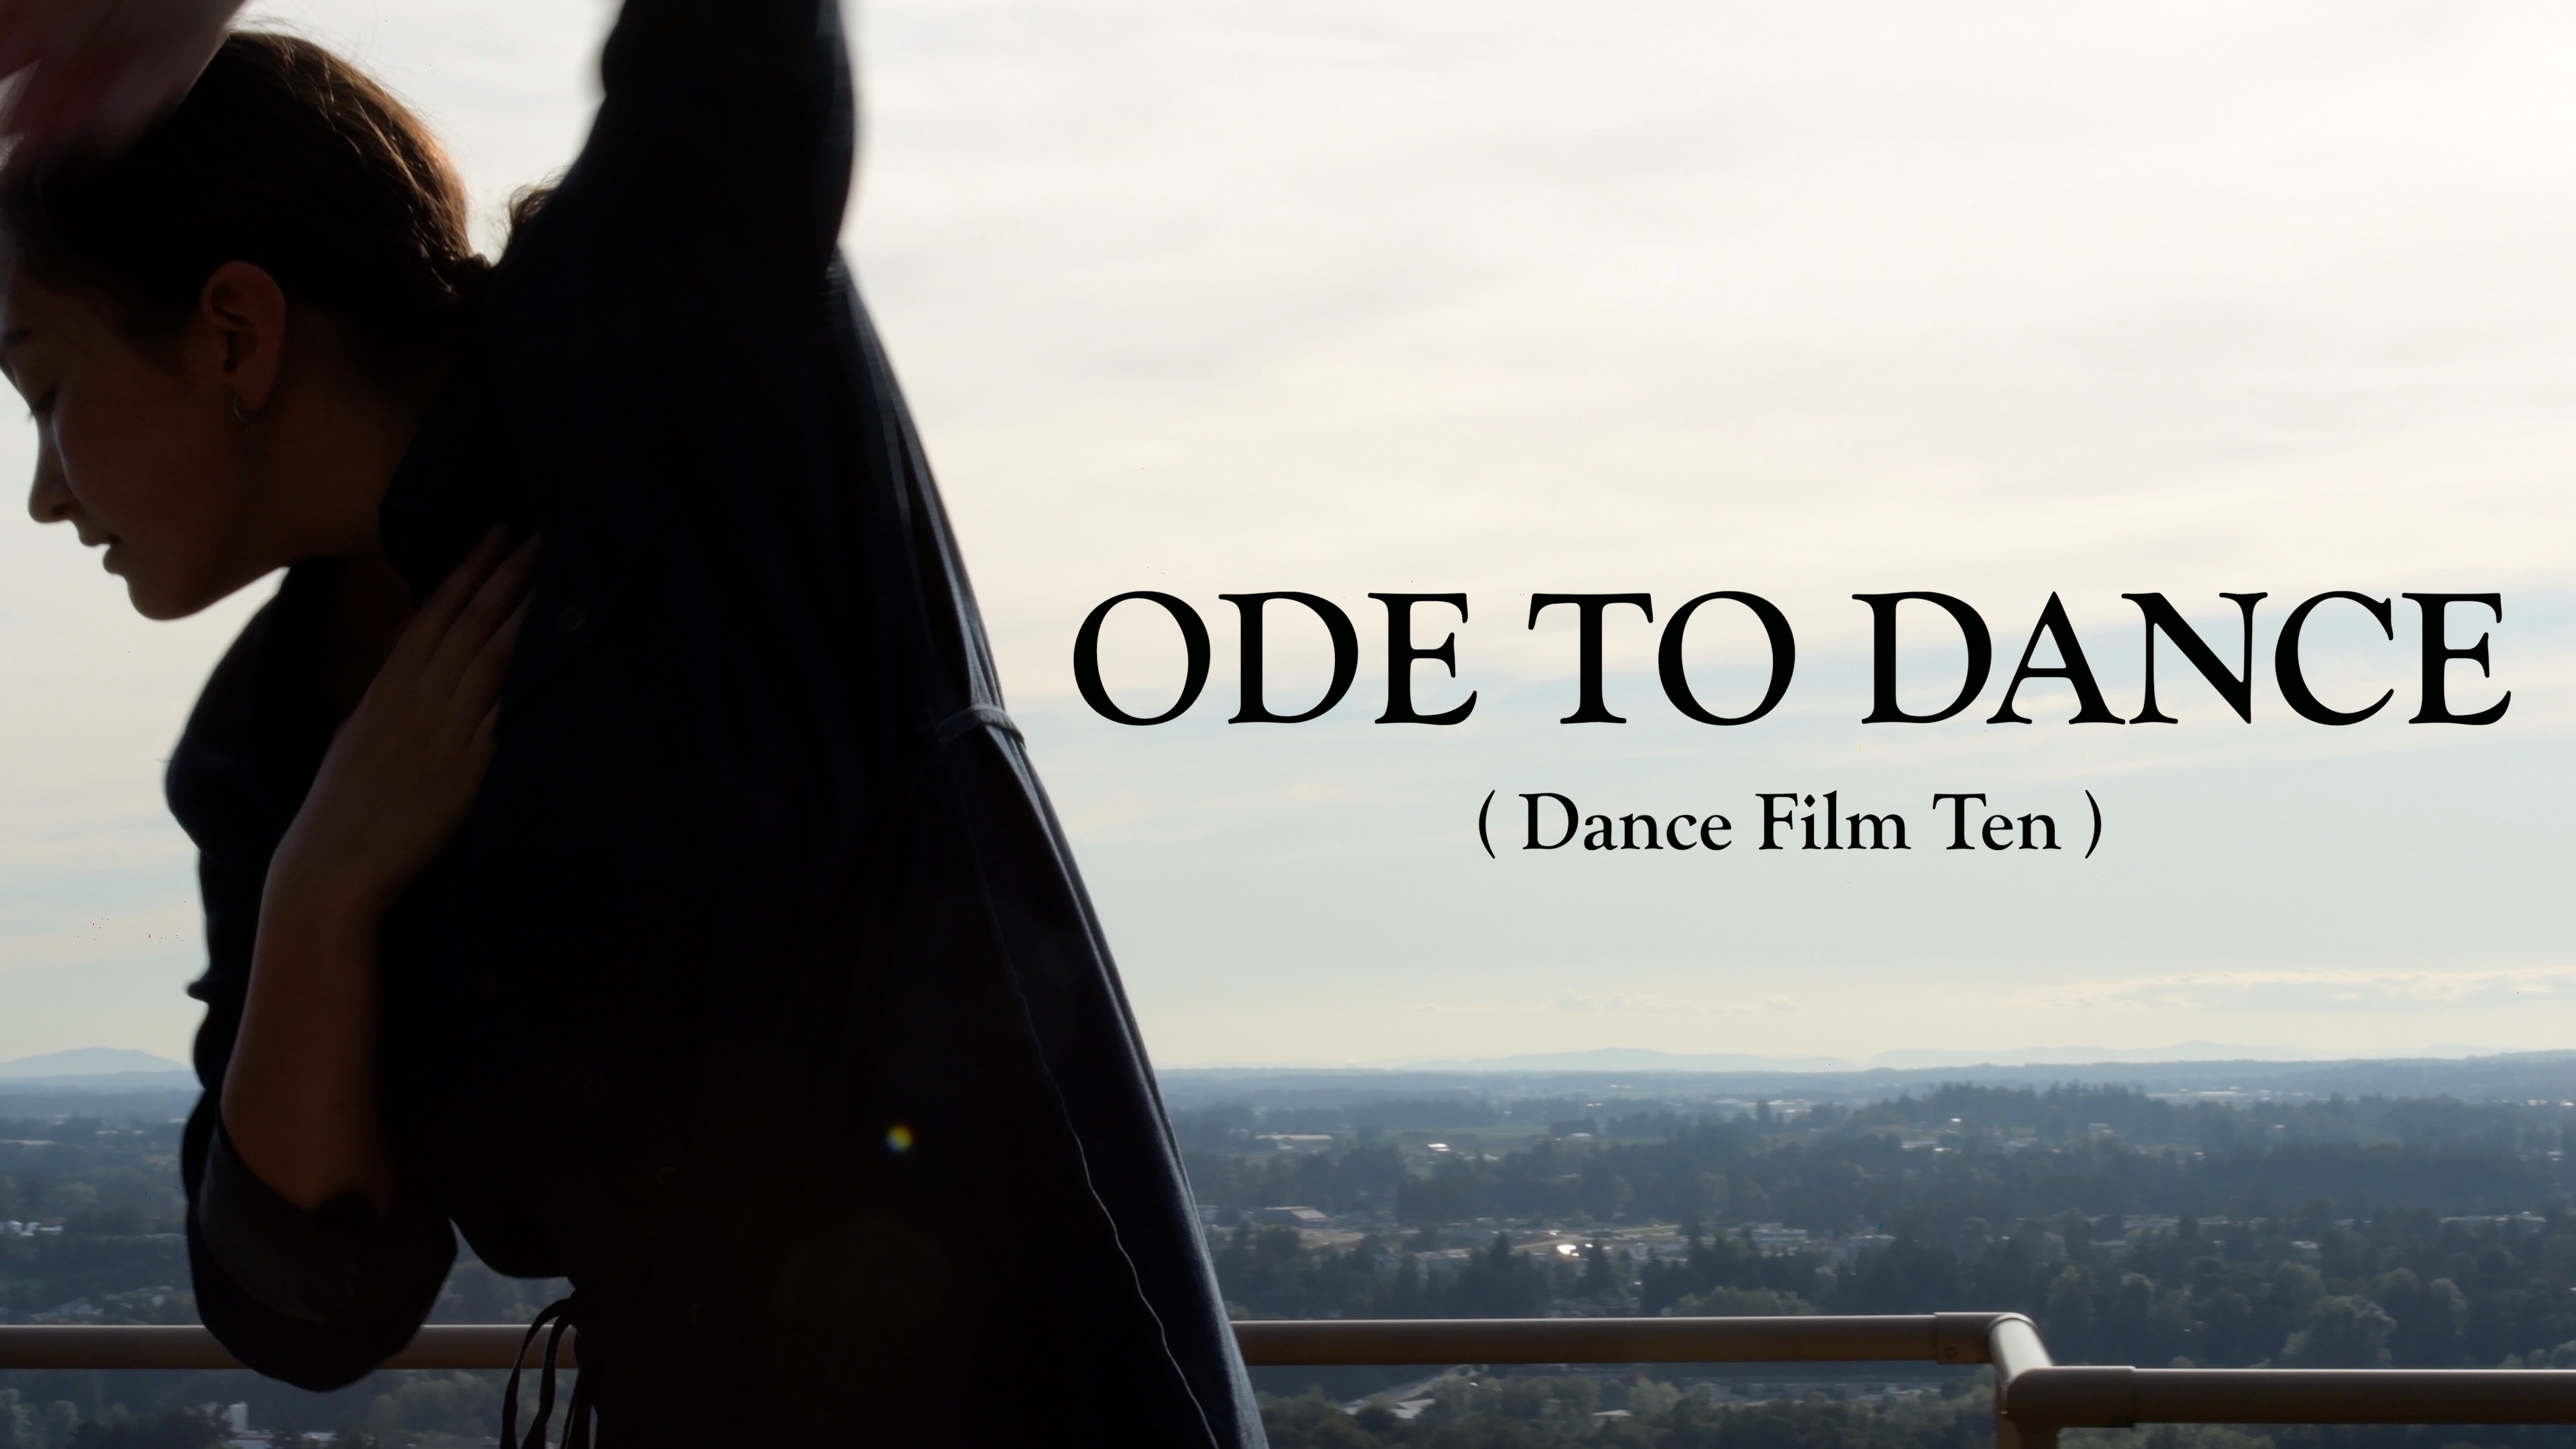 dance film 10 - title card.JPG